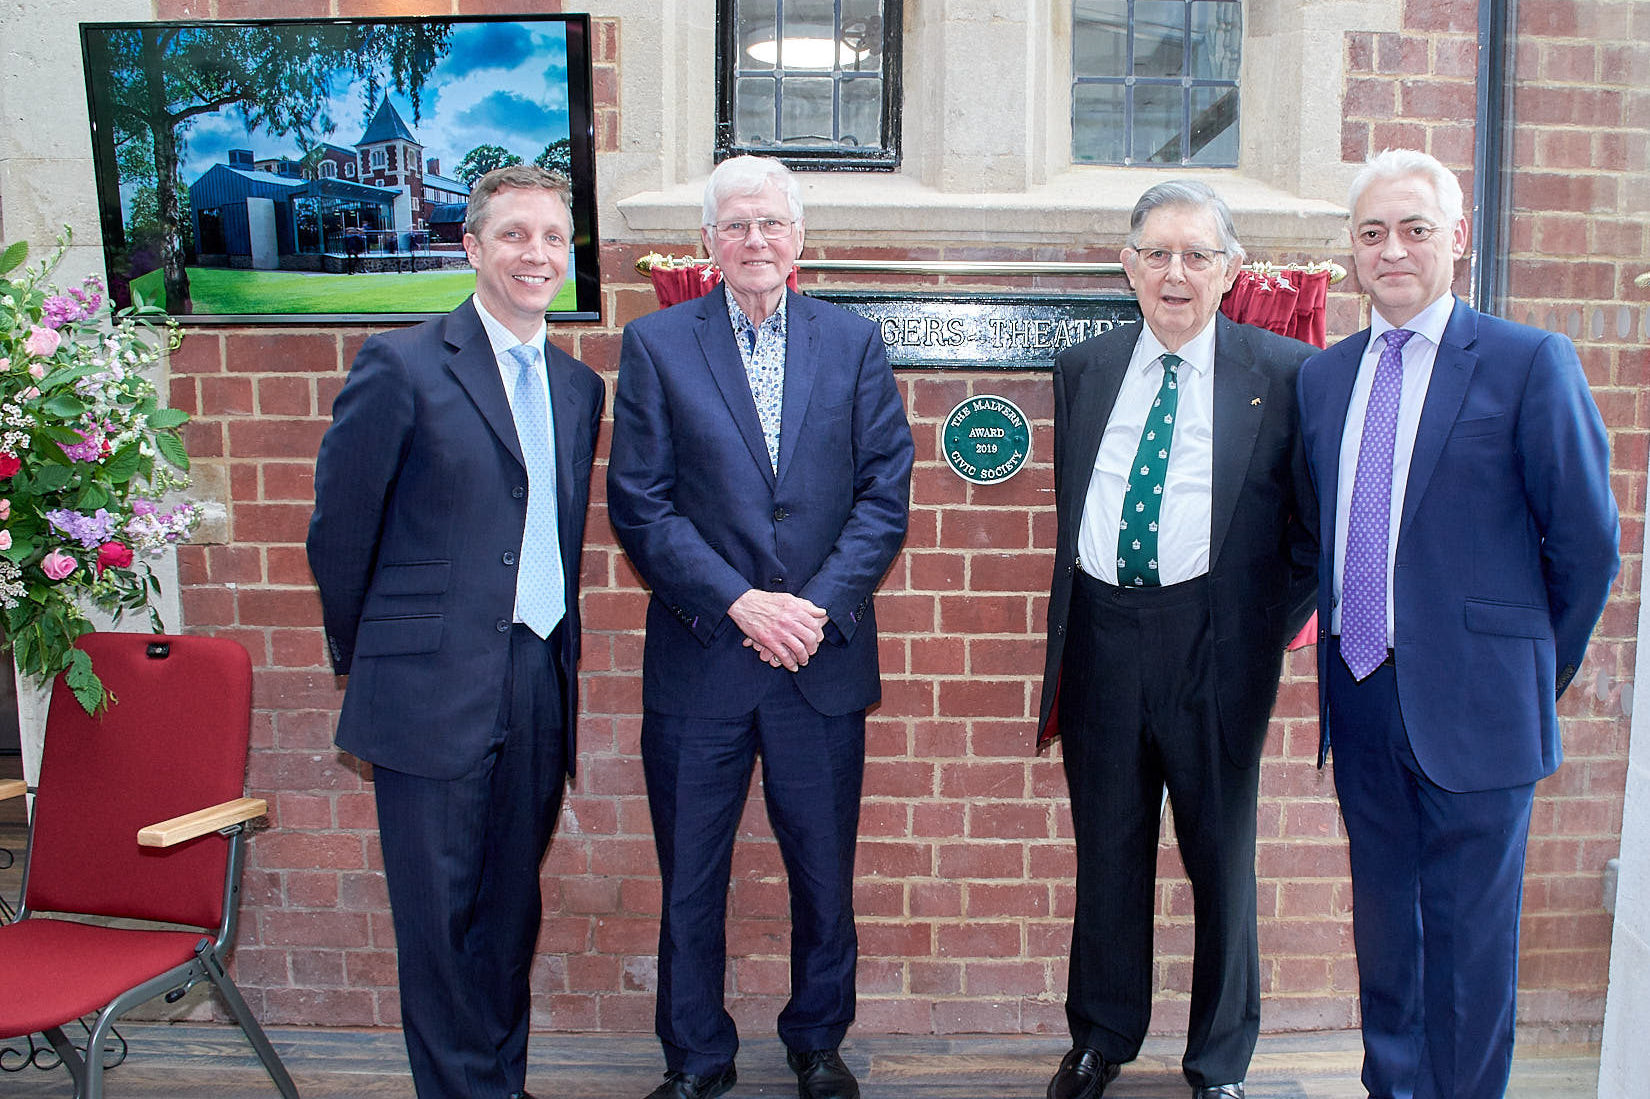 Civic Award Plaque With Keith Metcalfe - Headmaster, John Dixon - Civic Society Awards Committee, Dr John Harcup - Civic Society President and Mr Packham - Head of Drama